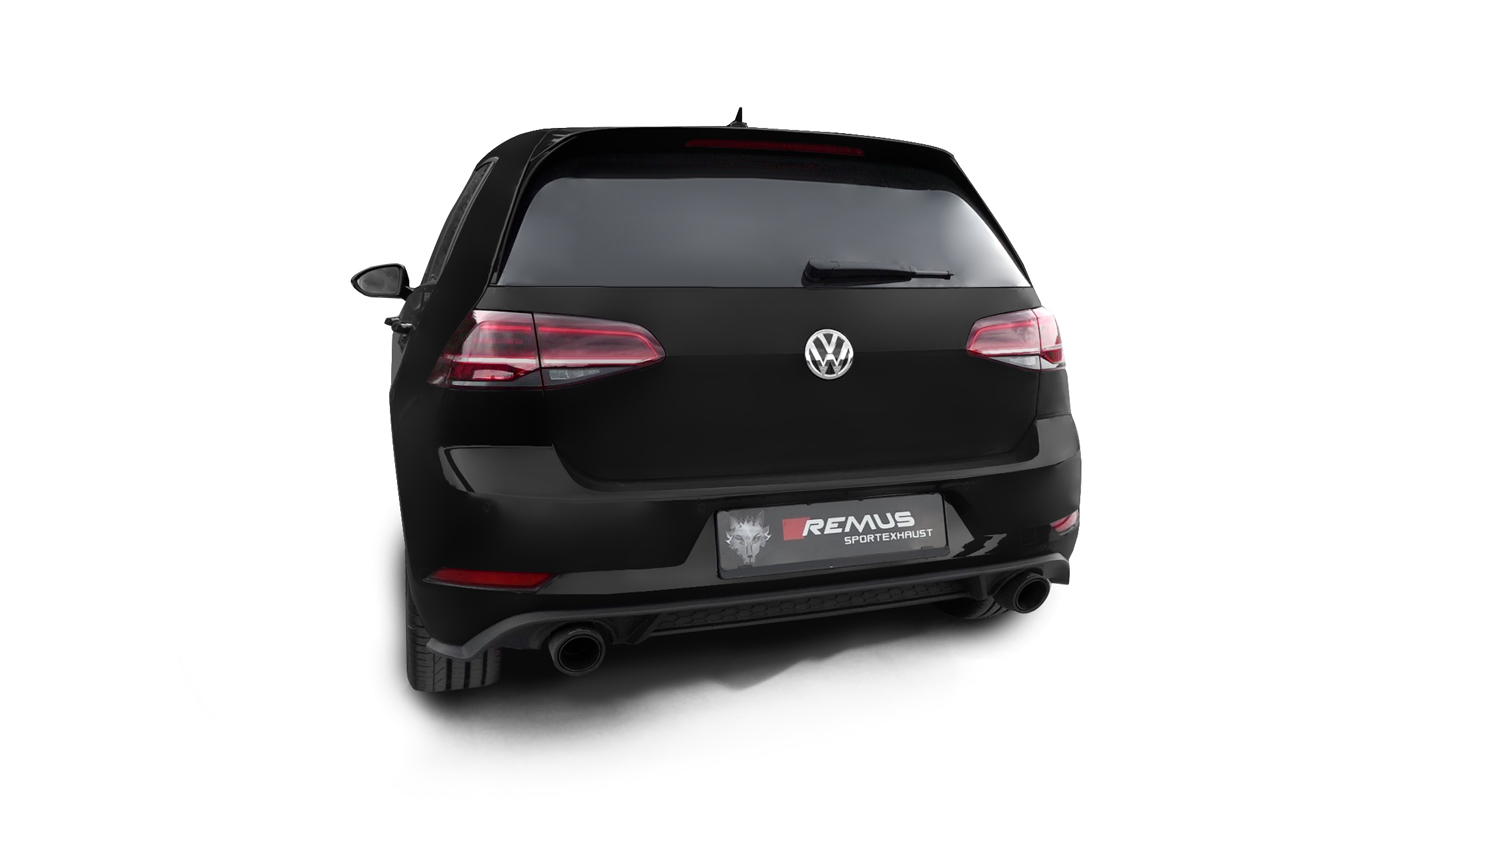 remus news remus product information 10 2017 vw golf vii gti facelift. Black Bedroom Furniture Sets. Home Design Ideas